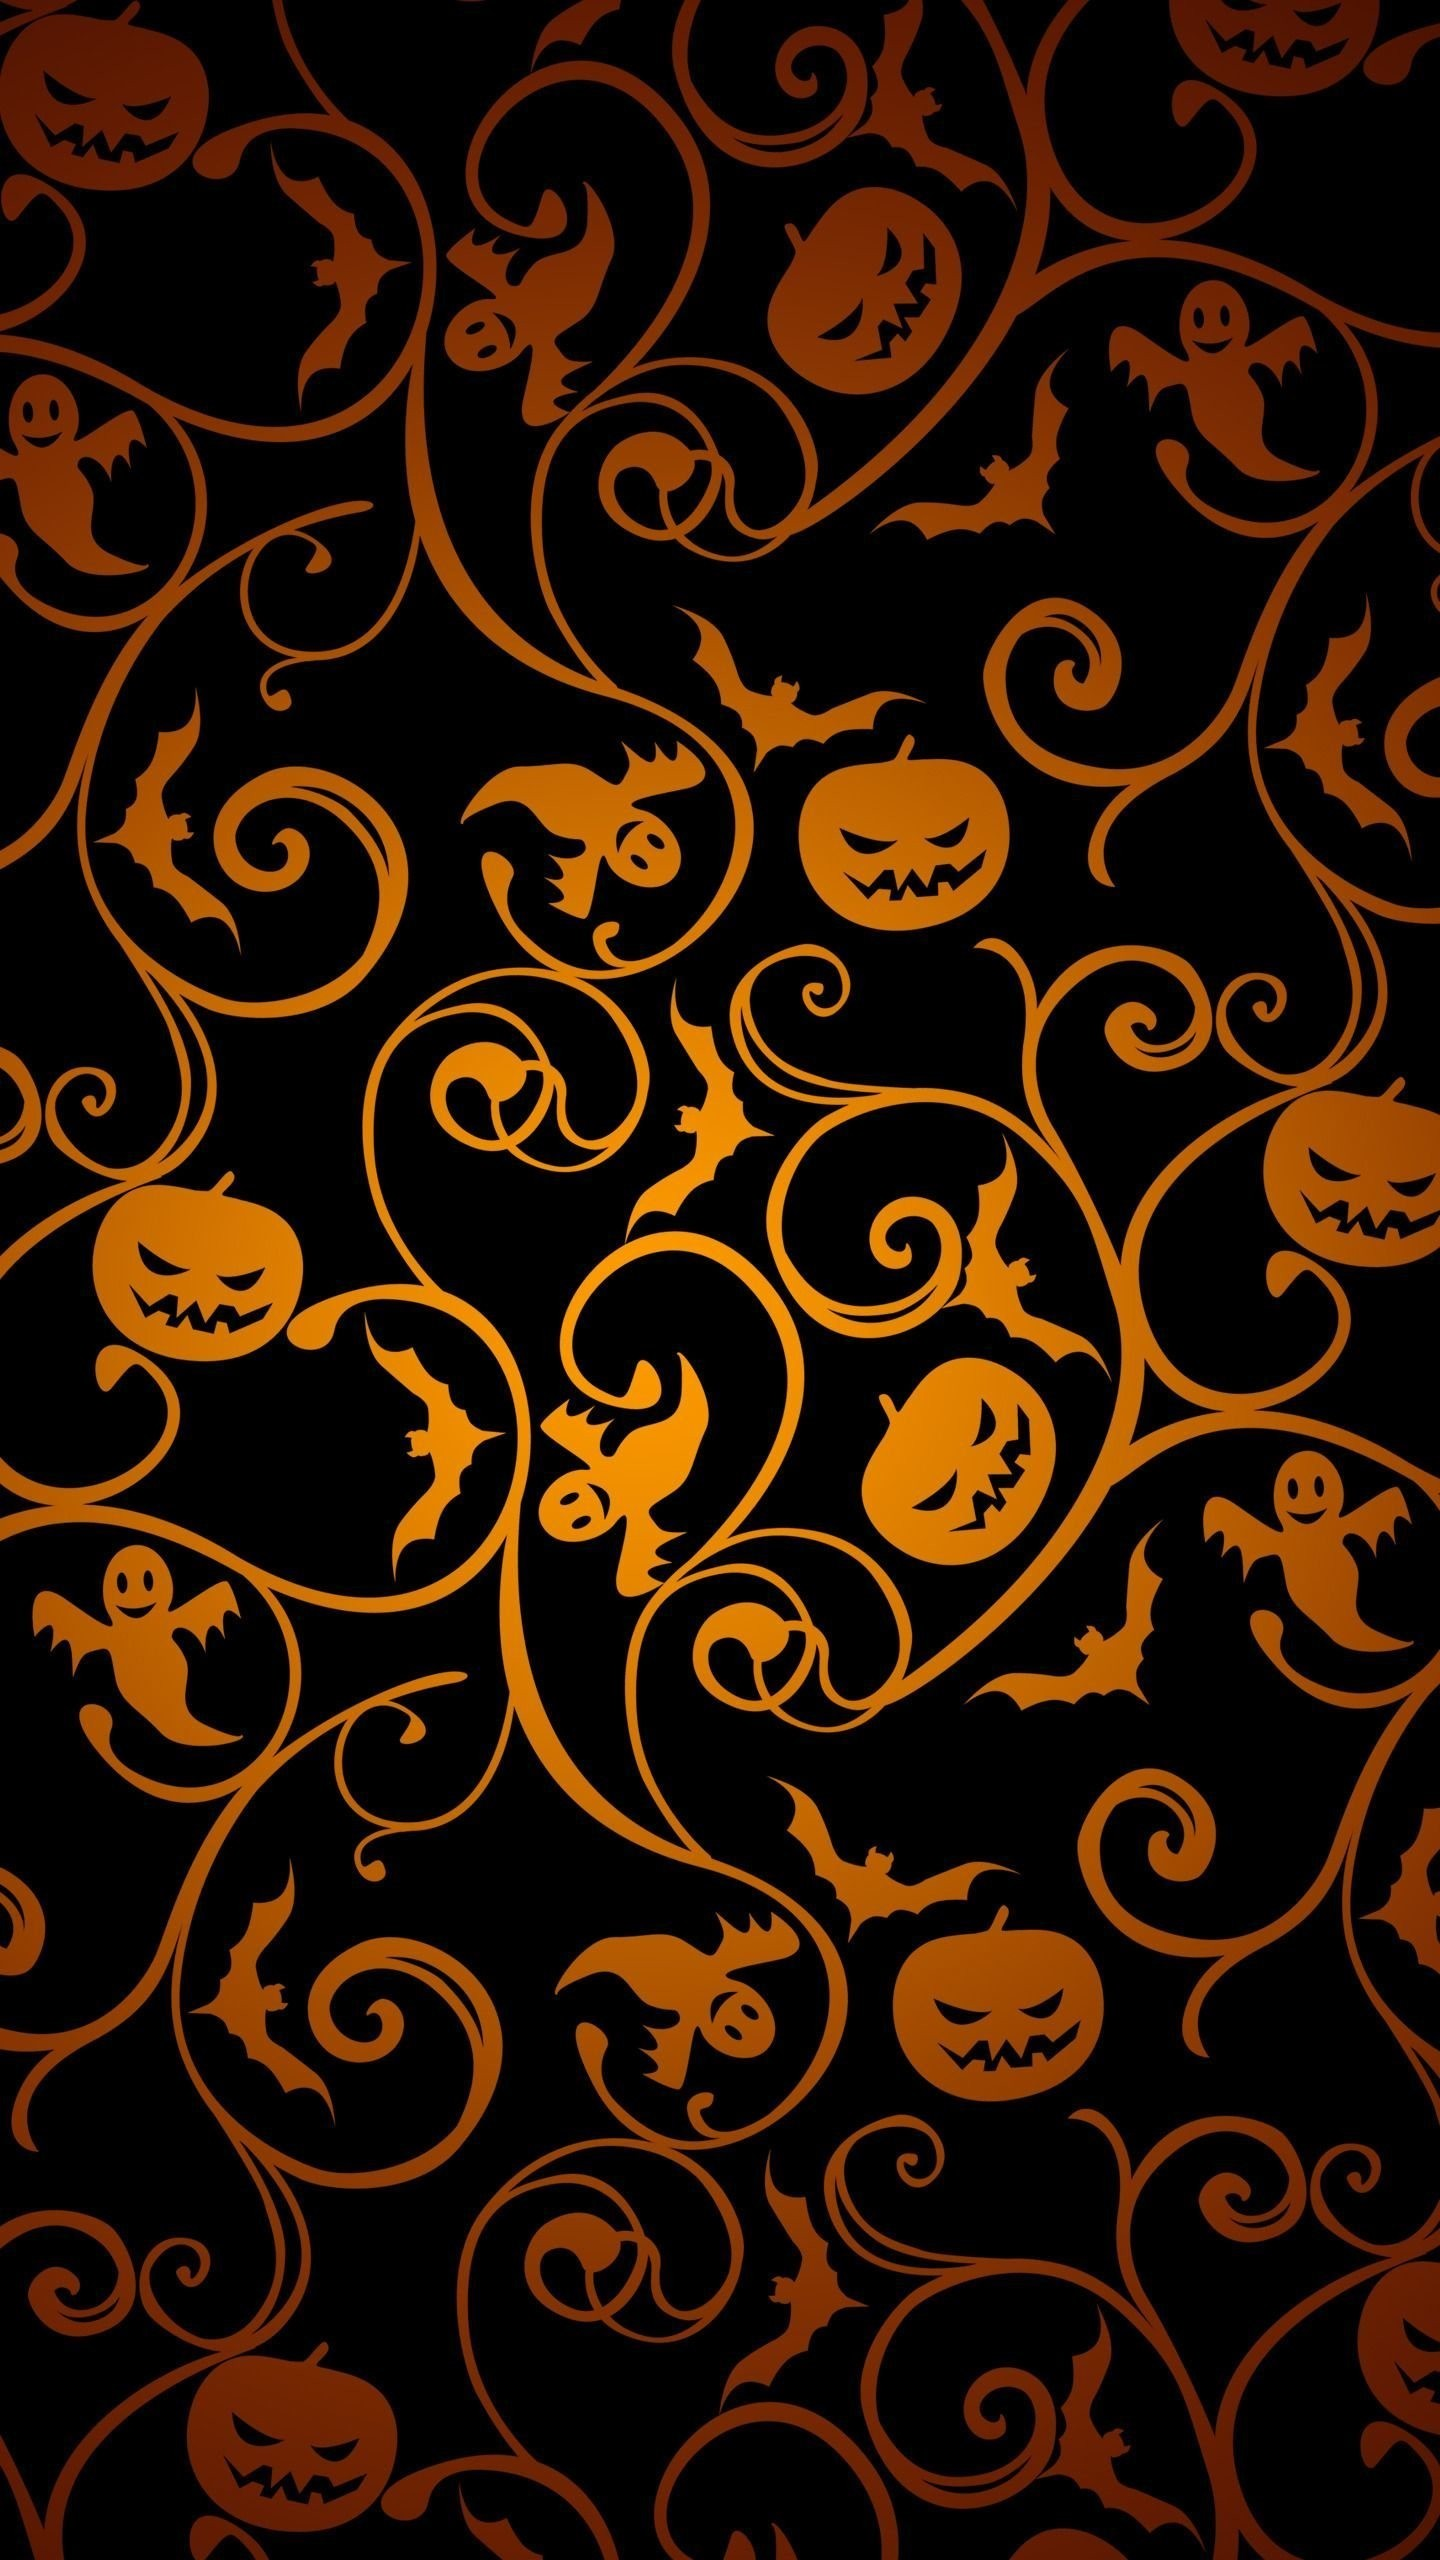 Top Wallpaper Halloween Galaxy - halloween-pattern-wallpaper-background-1440x2560  Image_912190.jpg